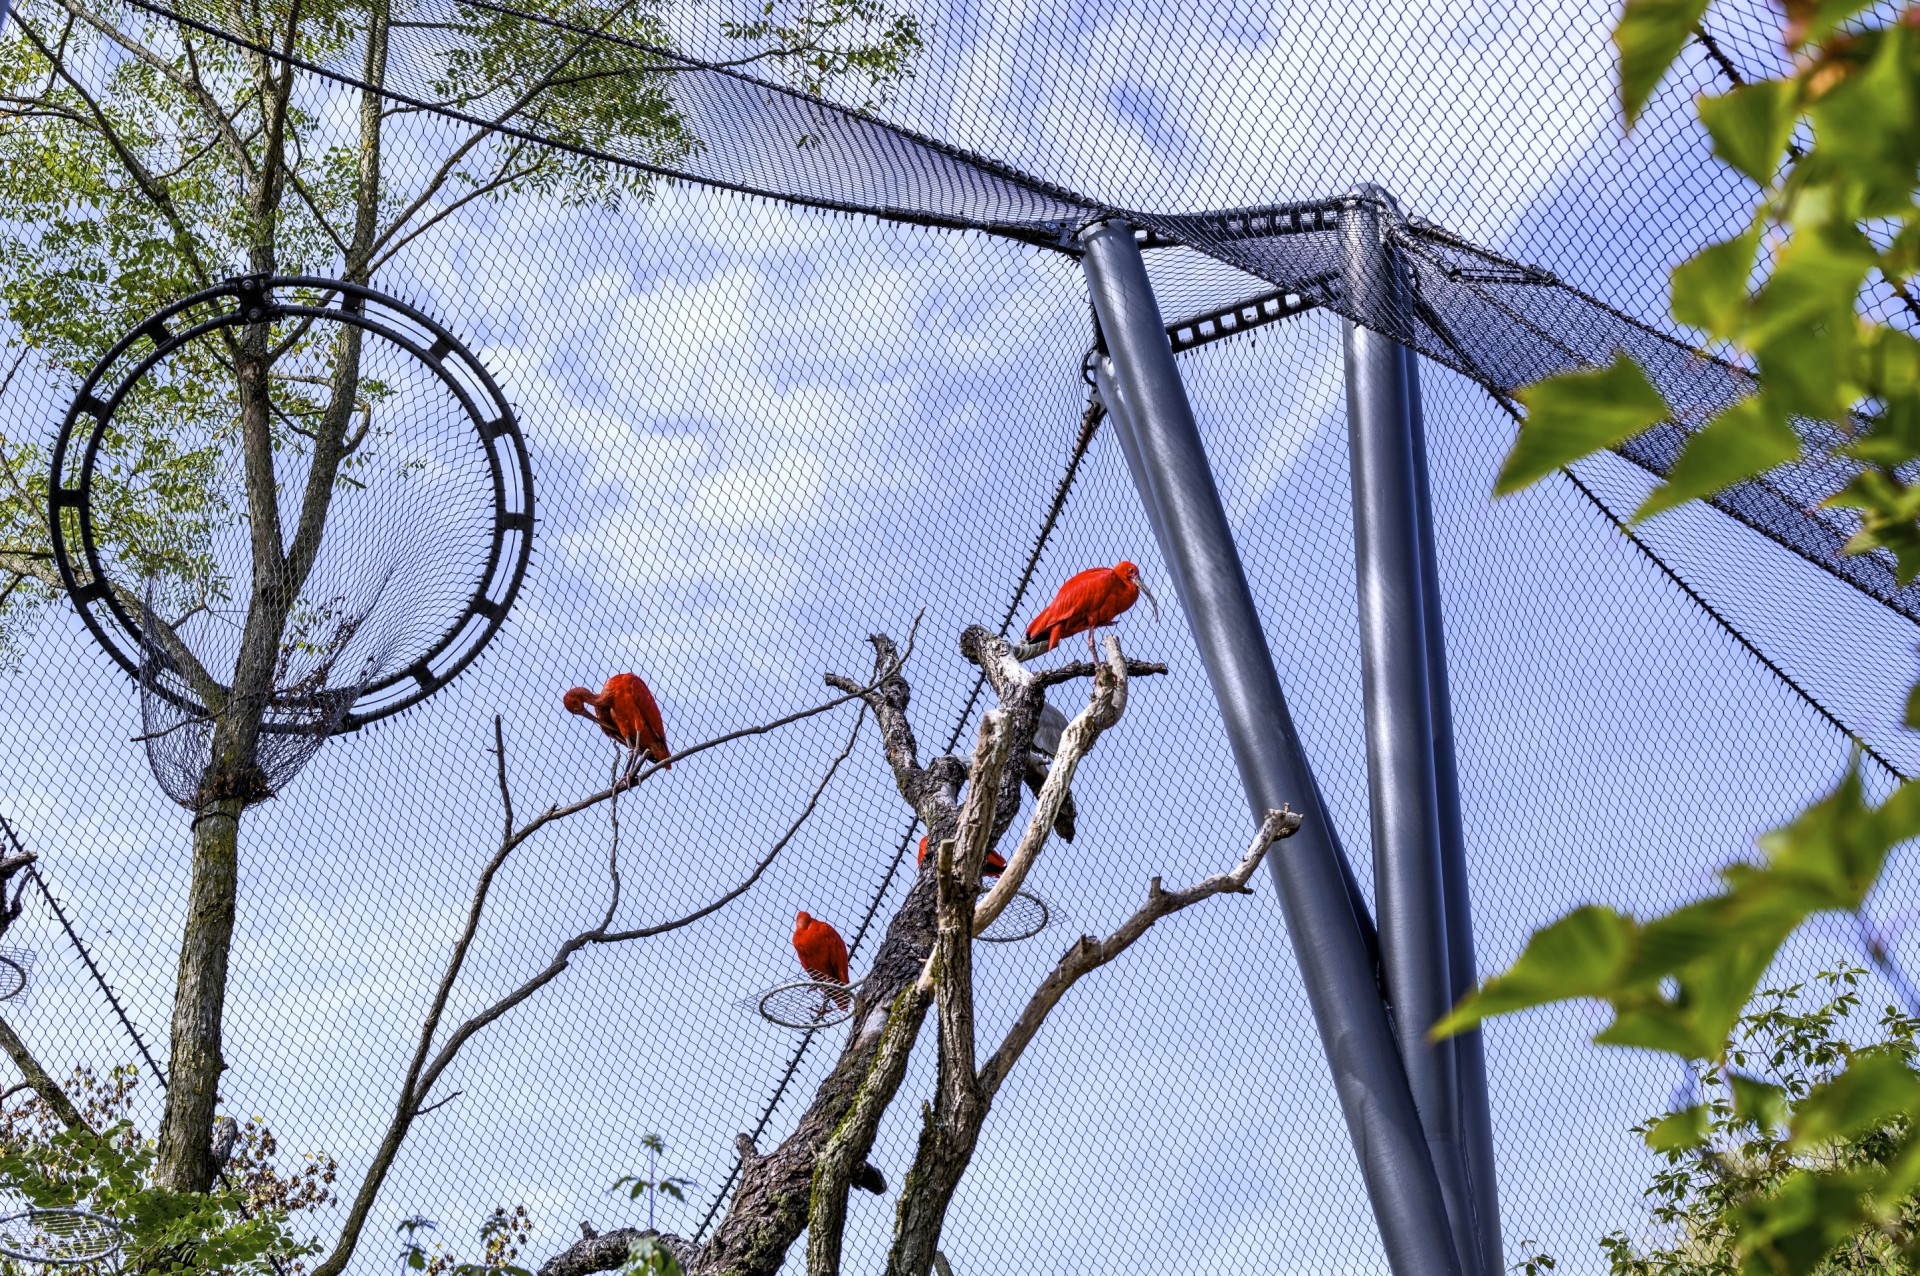 Red birds in animal enclosure made of stainless steel